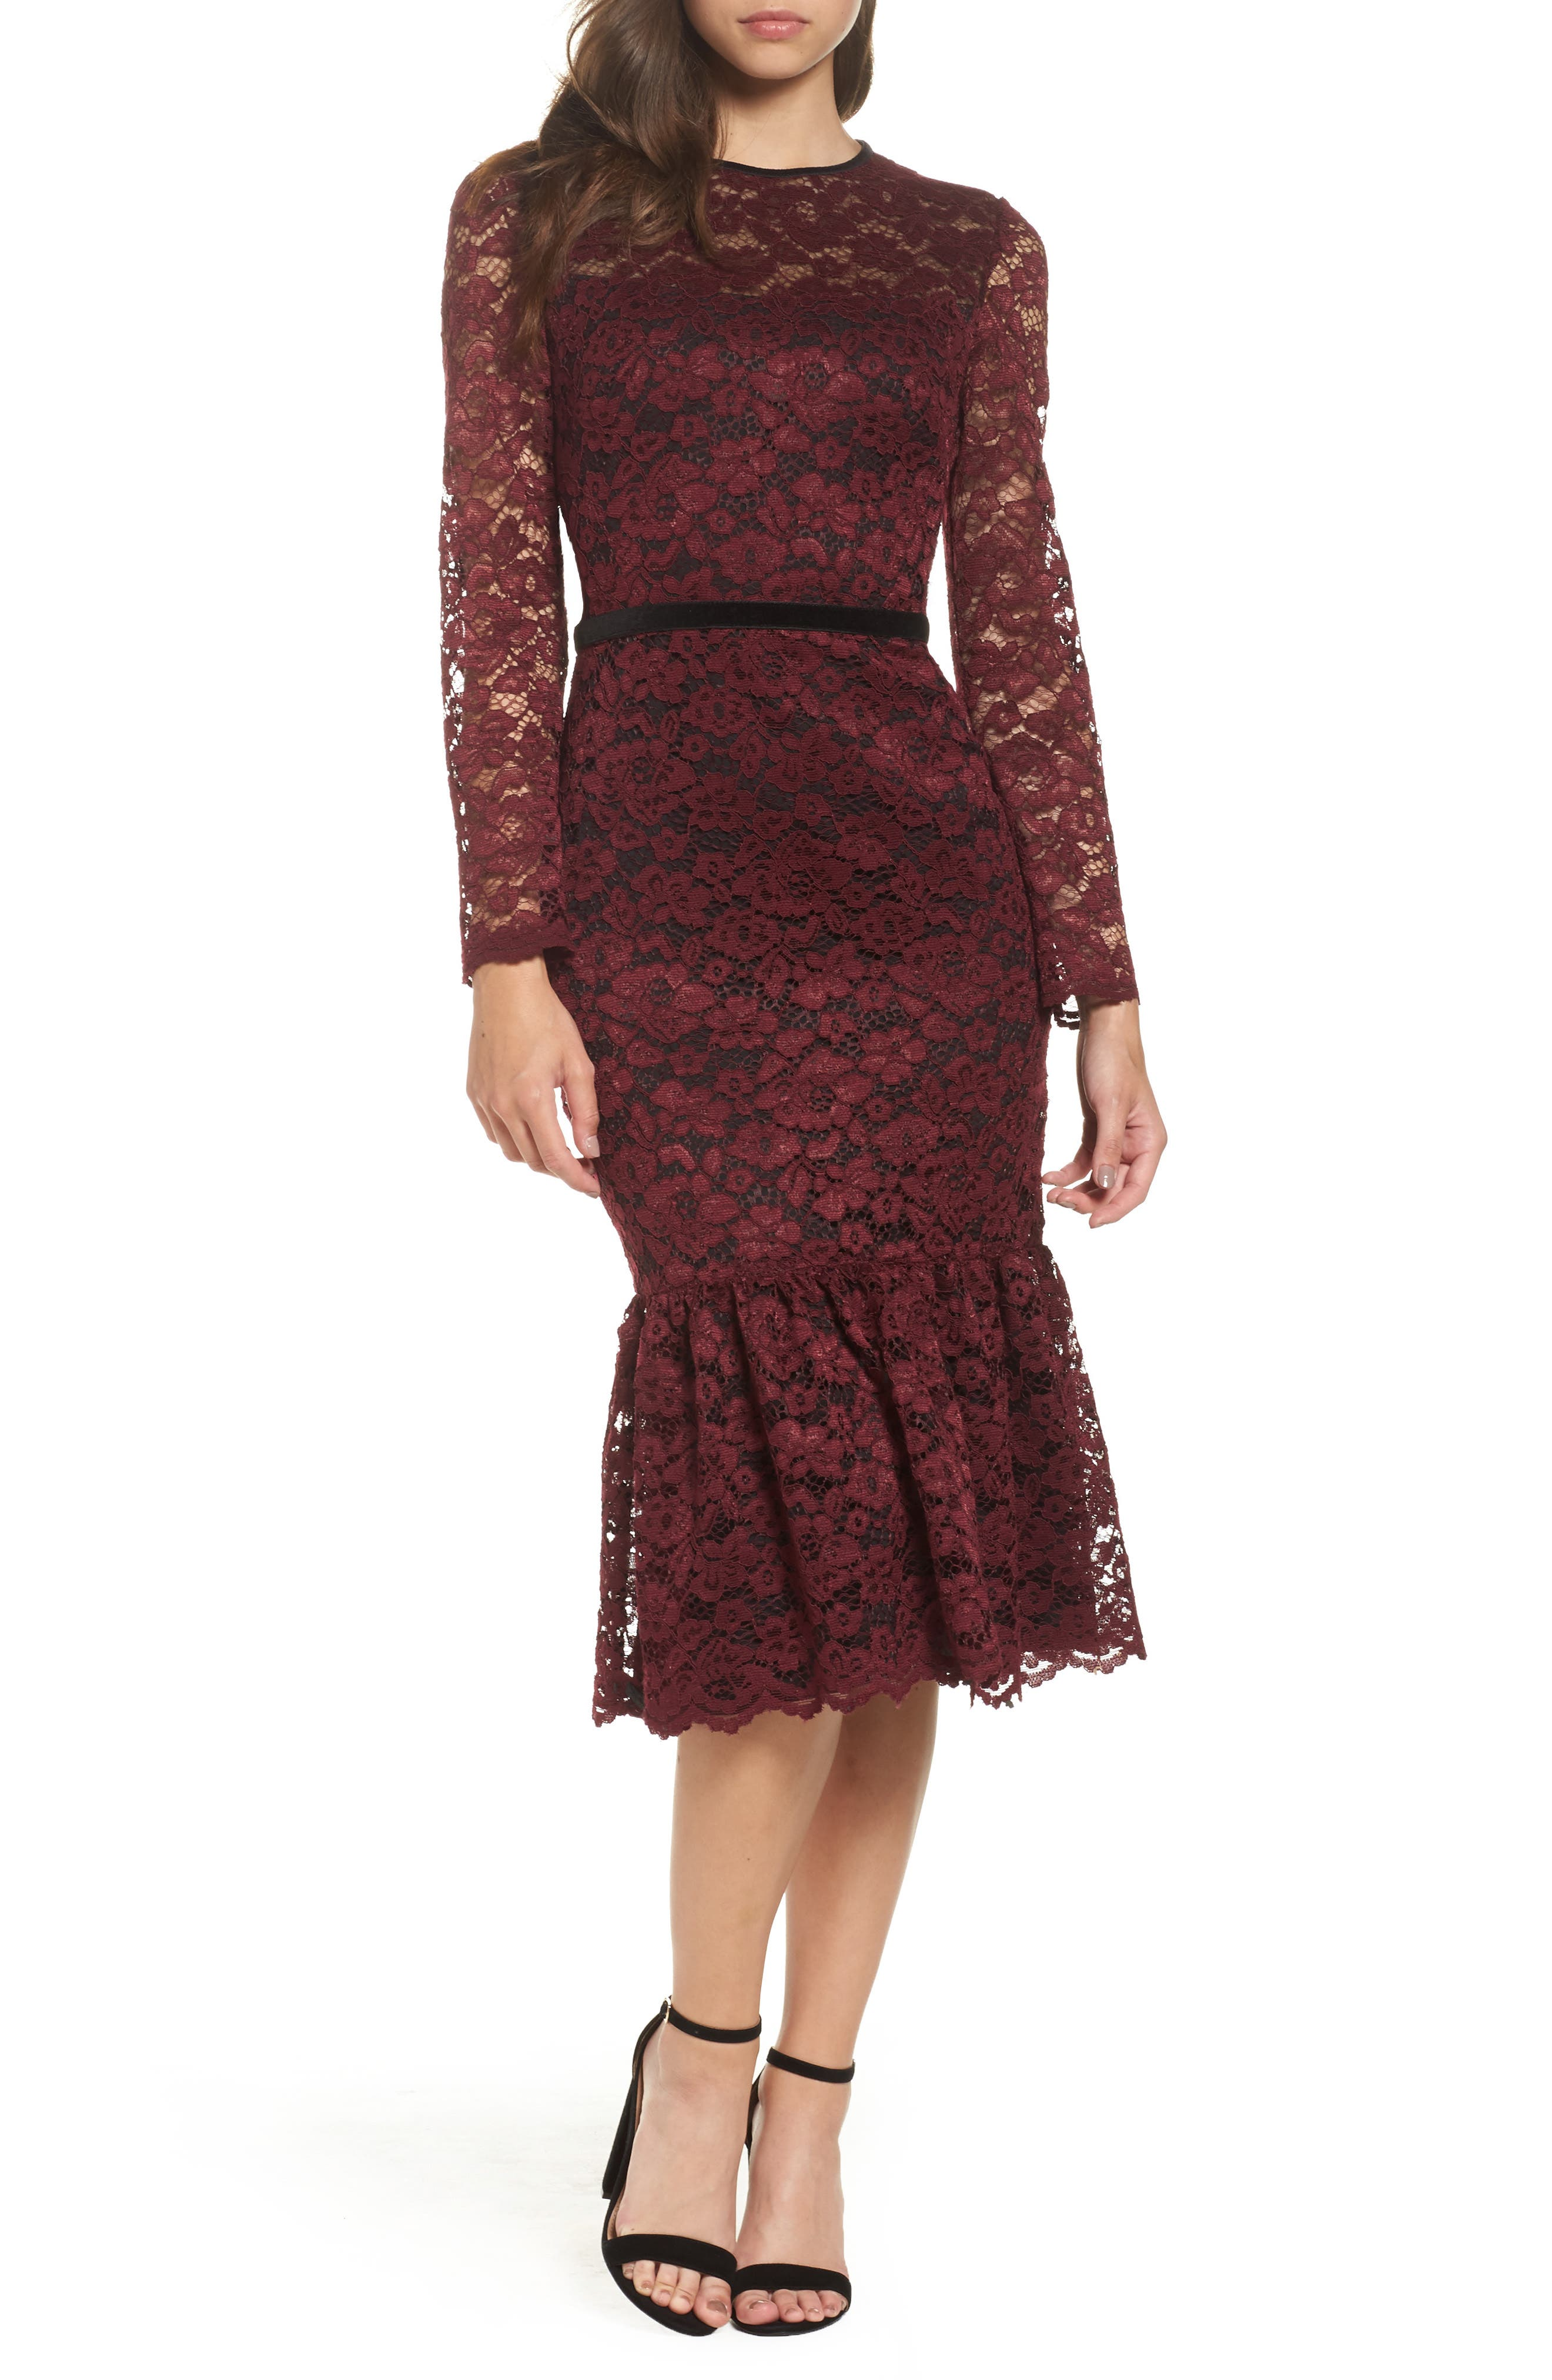 Maggy london gold lace dress